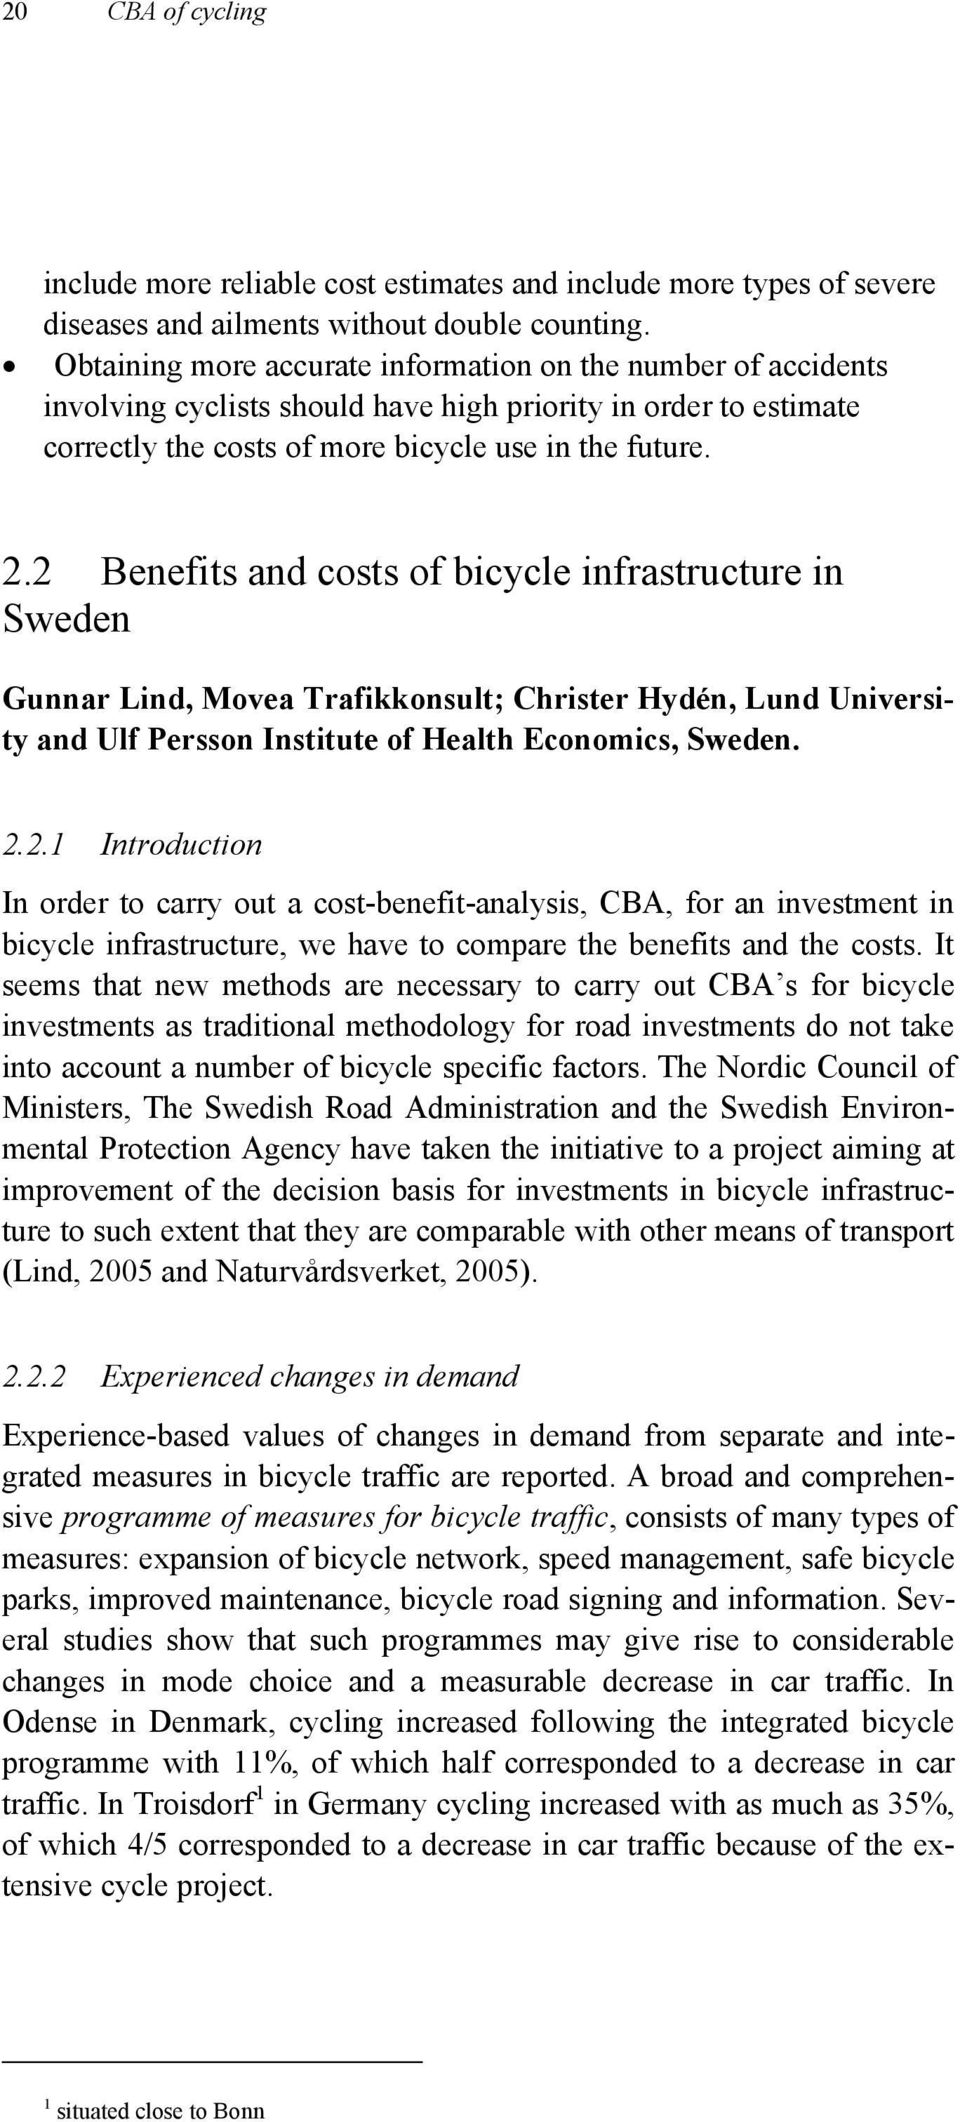 2 Benefits and costs of bicycle infrastructure in Sweden Gunnar Lind, Movea Trafikkonsult; Christer Hydén, Lund University and Ulf Persson Institute of Health Economics, Sweden. 2.2.1 Introduction In order to carry out a cost-benefit-analysis, CBA, for an investment in bicycle infrastructure, we have to compare the benefits and the costs.